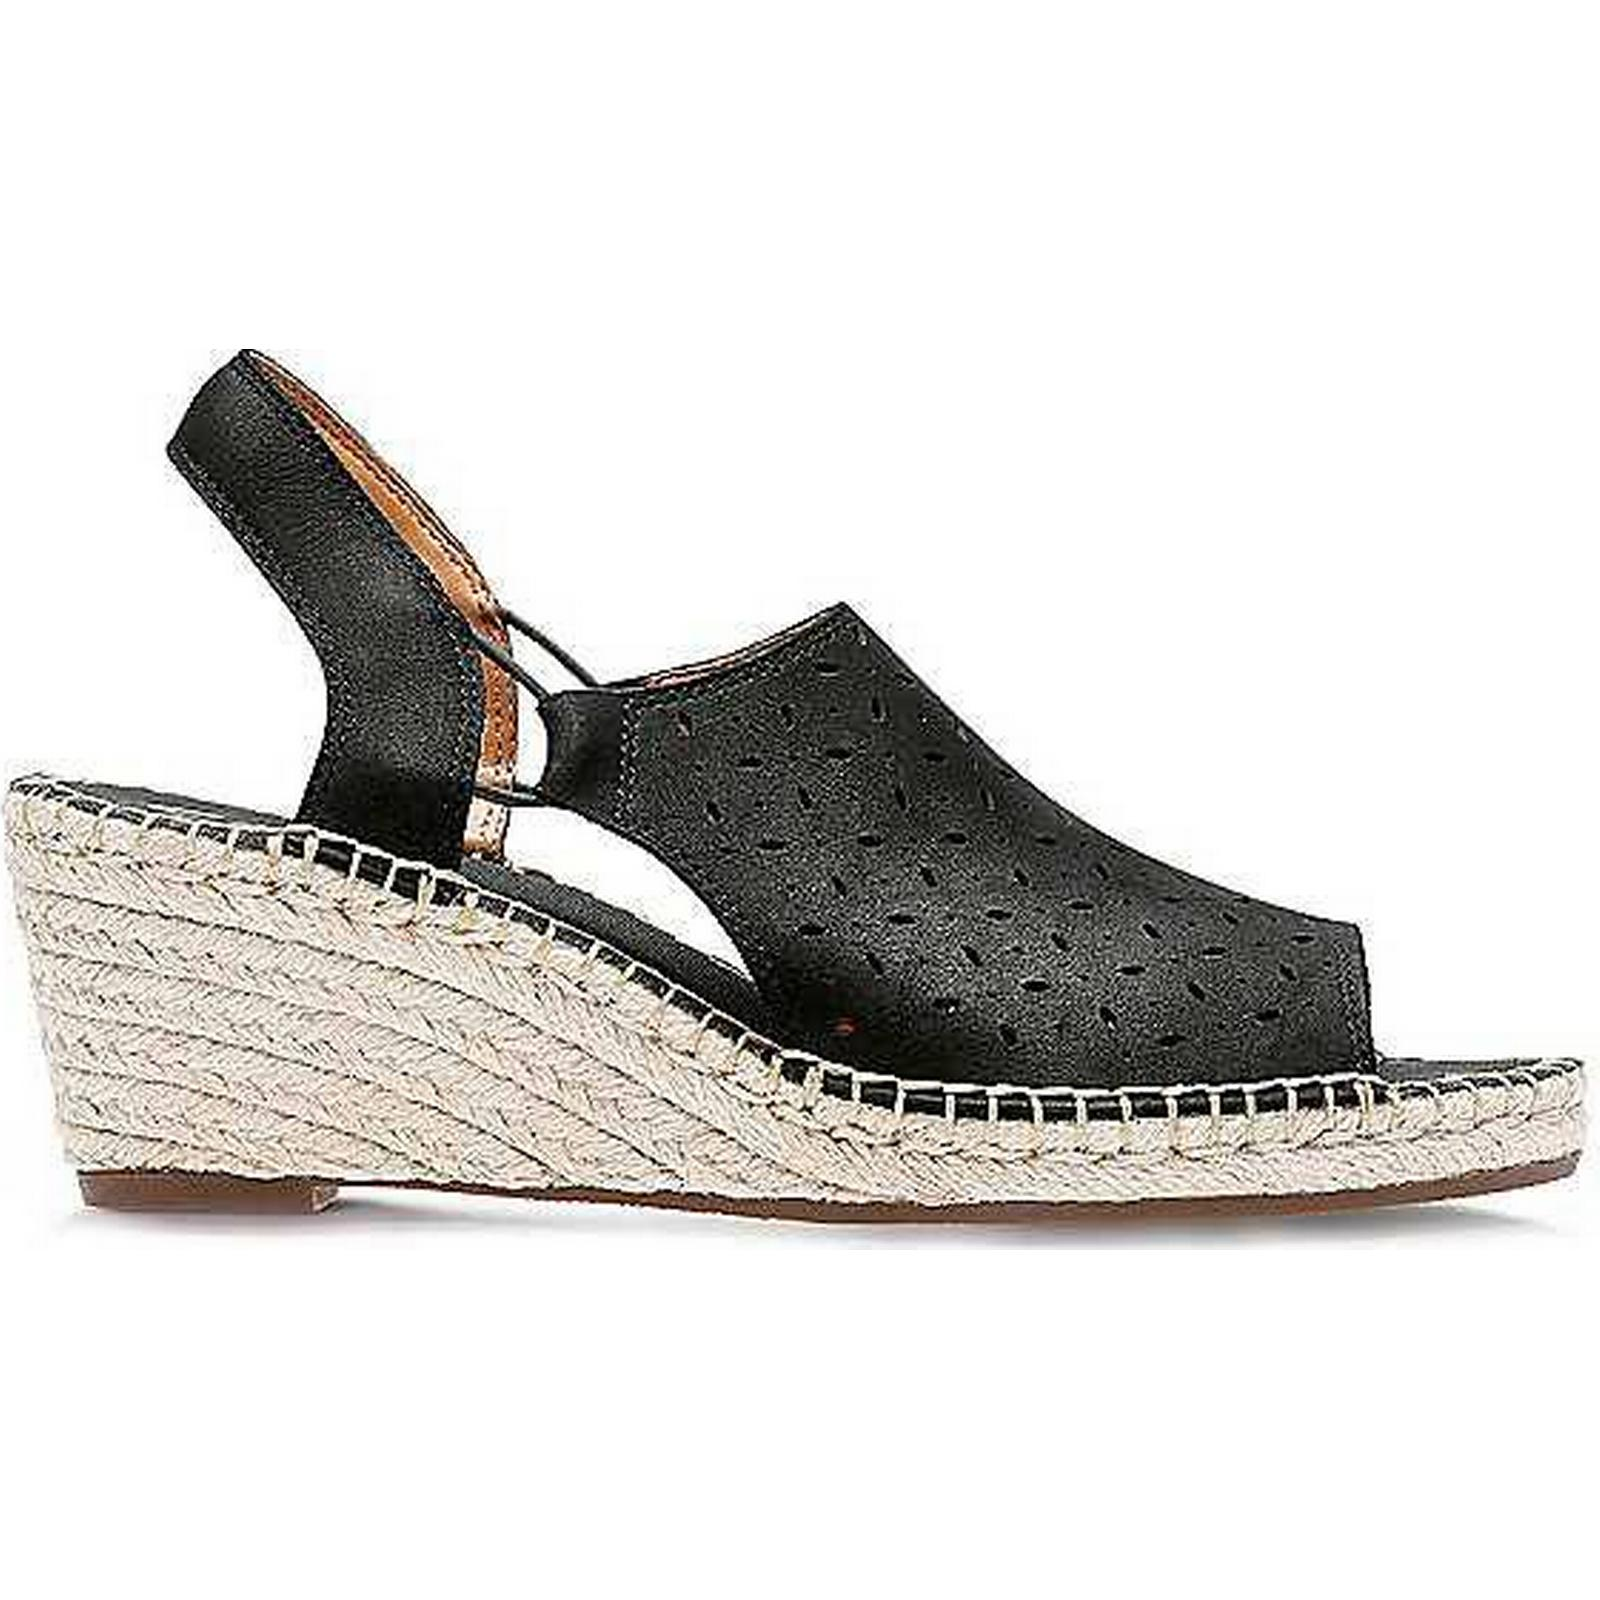 Clarks Wedge Mules Mules Mules by Clarks 8de1a9